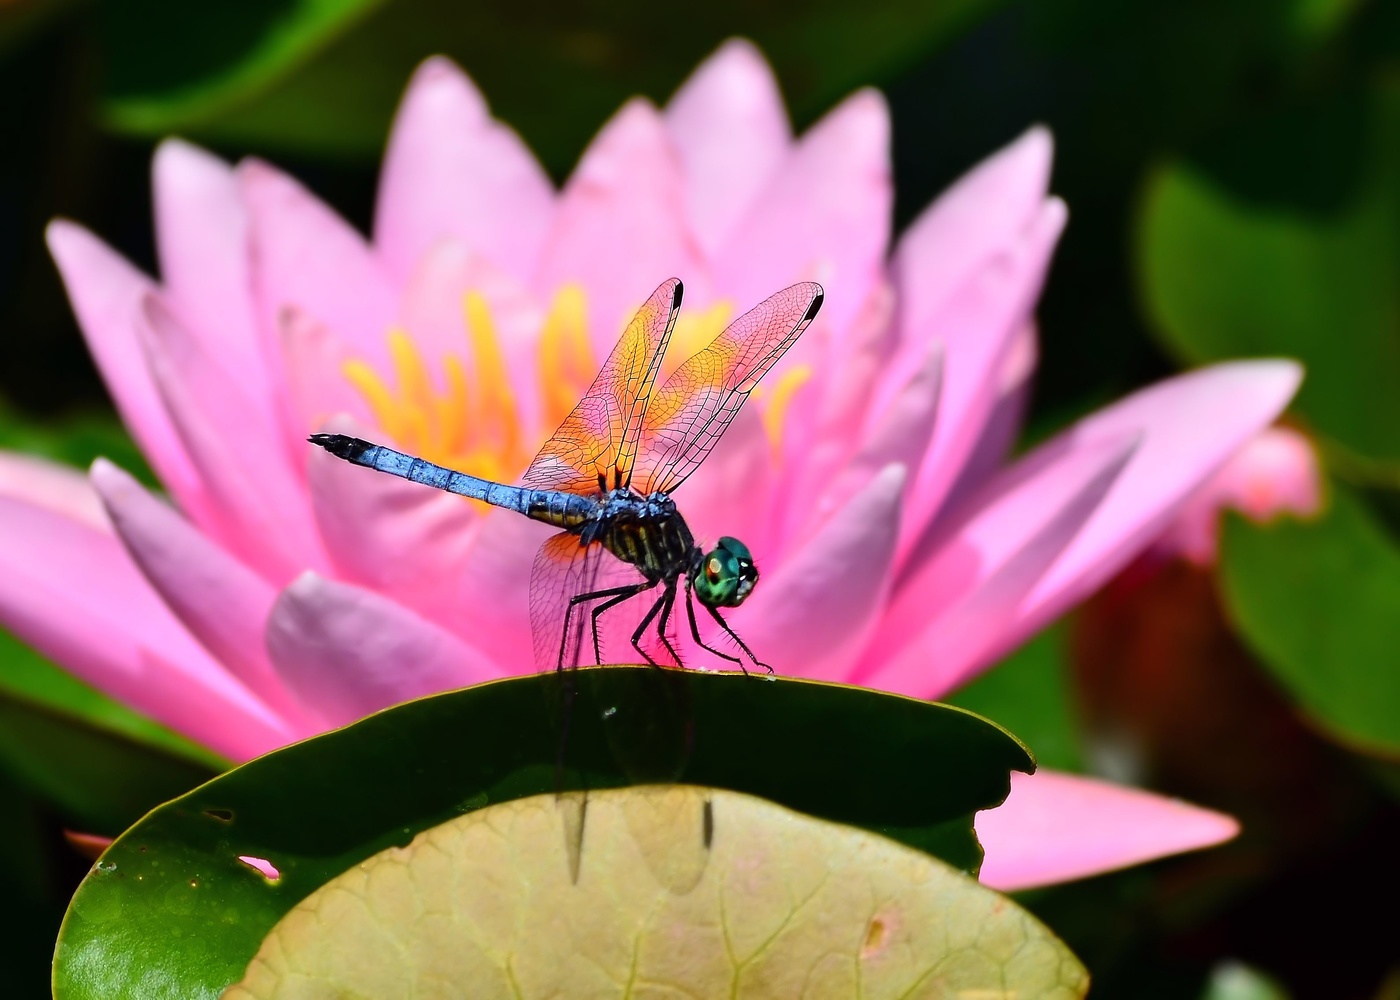 Dragonfly by Kenny Simpson